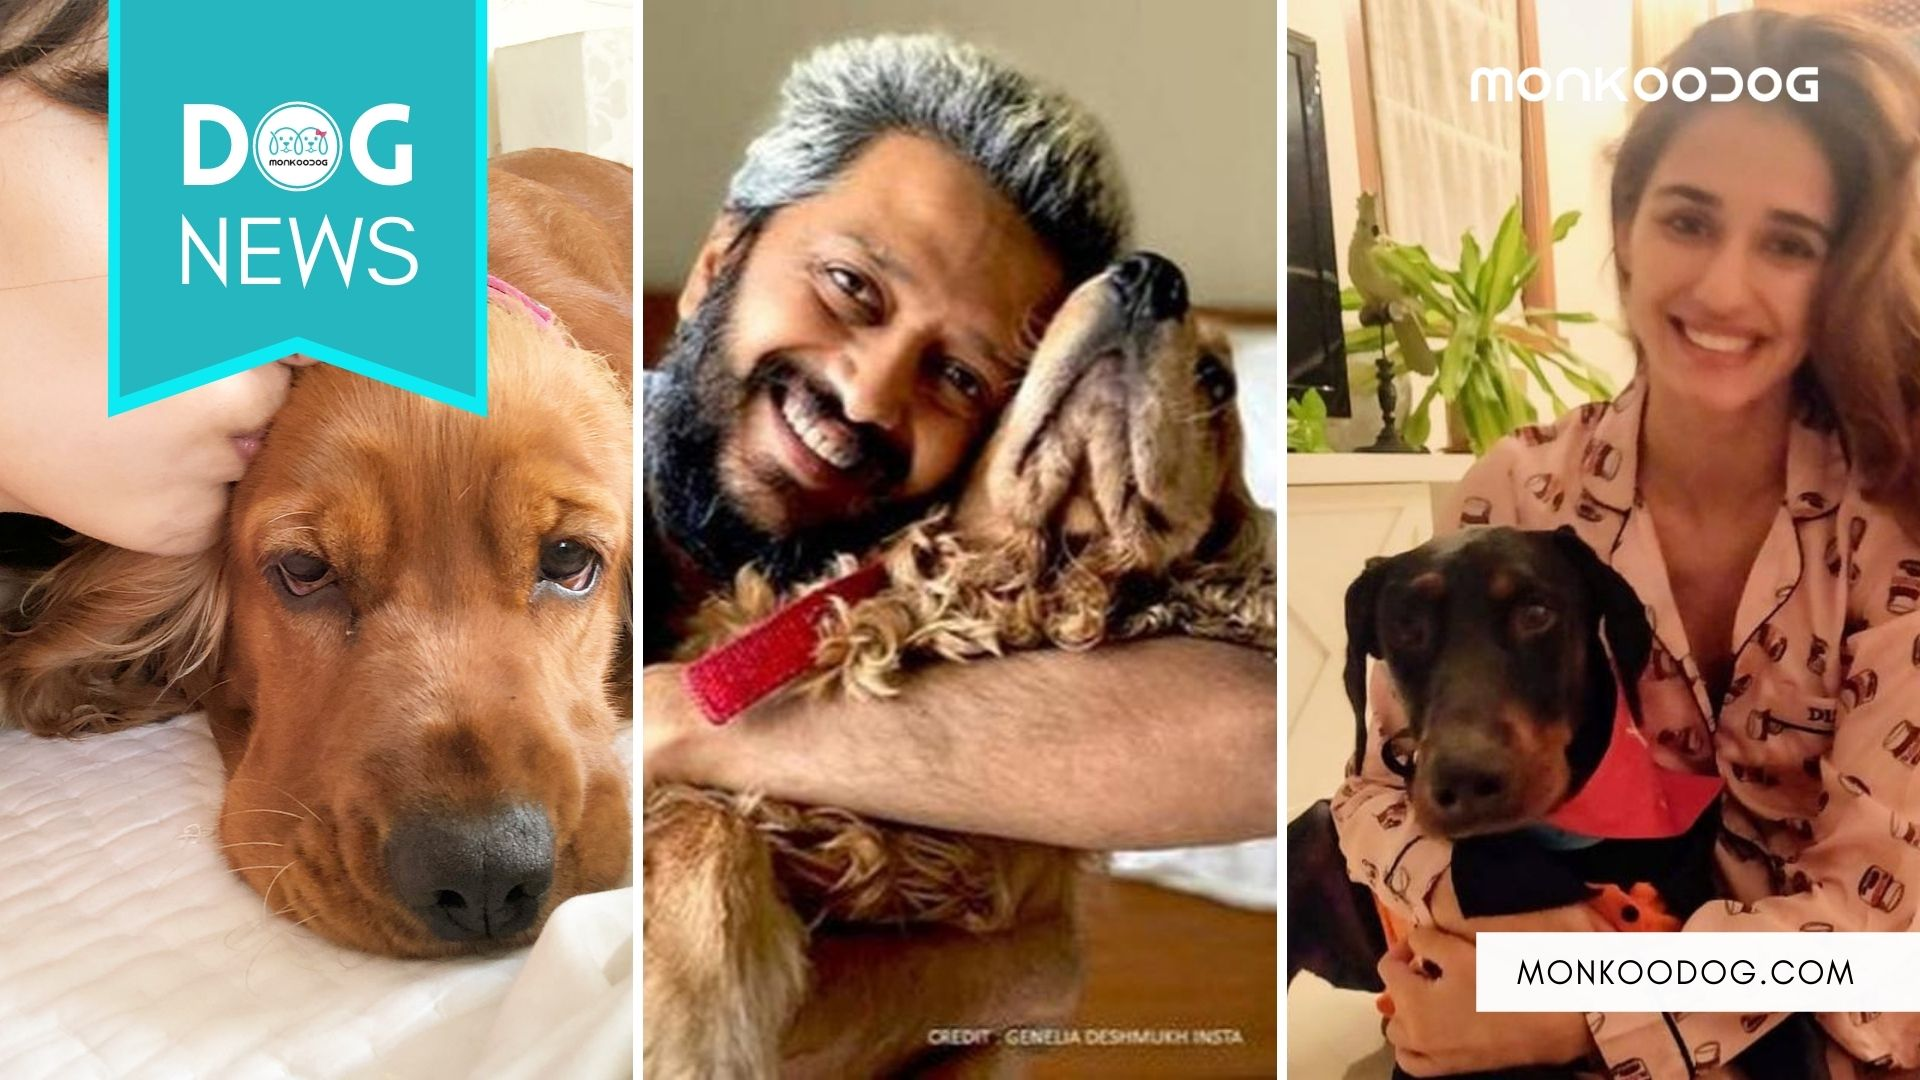 From Disha Patani to Riteish Deshmukh, Pet love seems to be the new celeb stories of social media in 2021